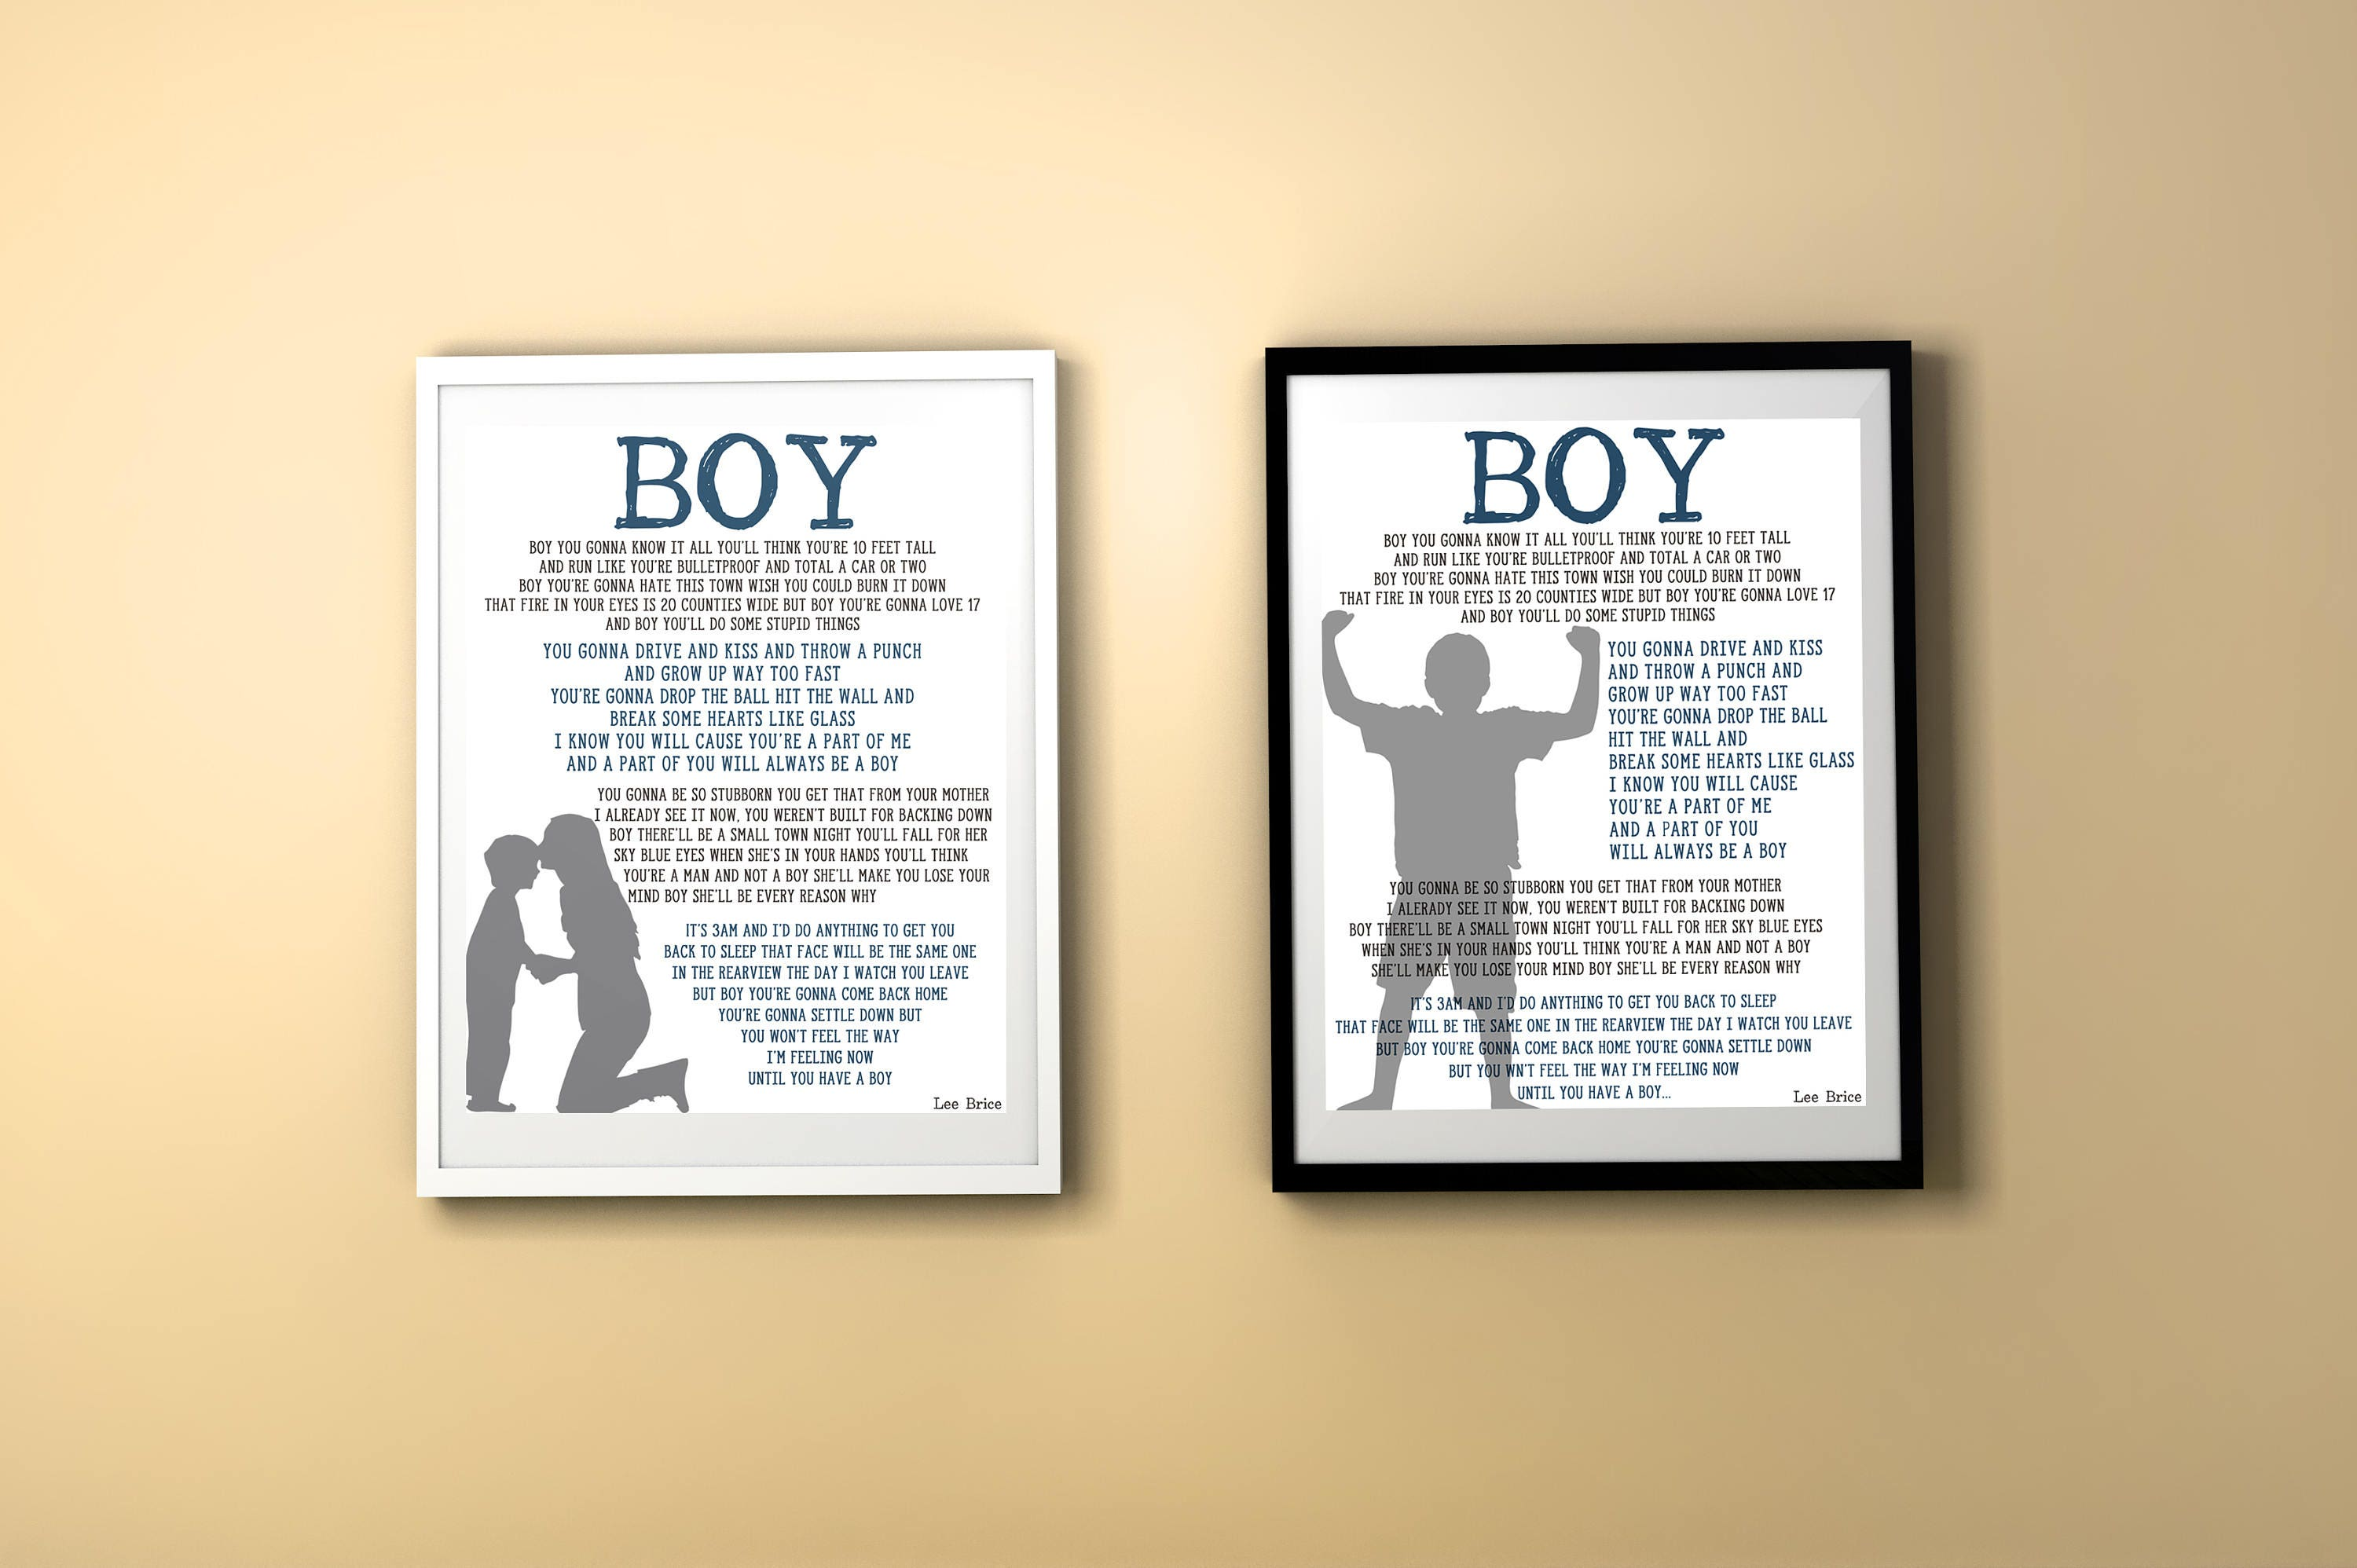 Boy Lee Brice Boy\'s Room Decor Song for Son